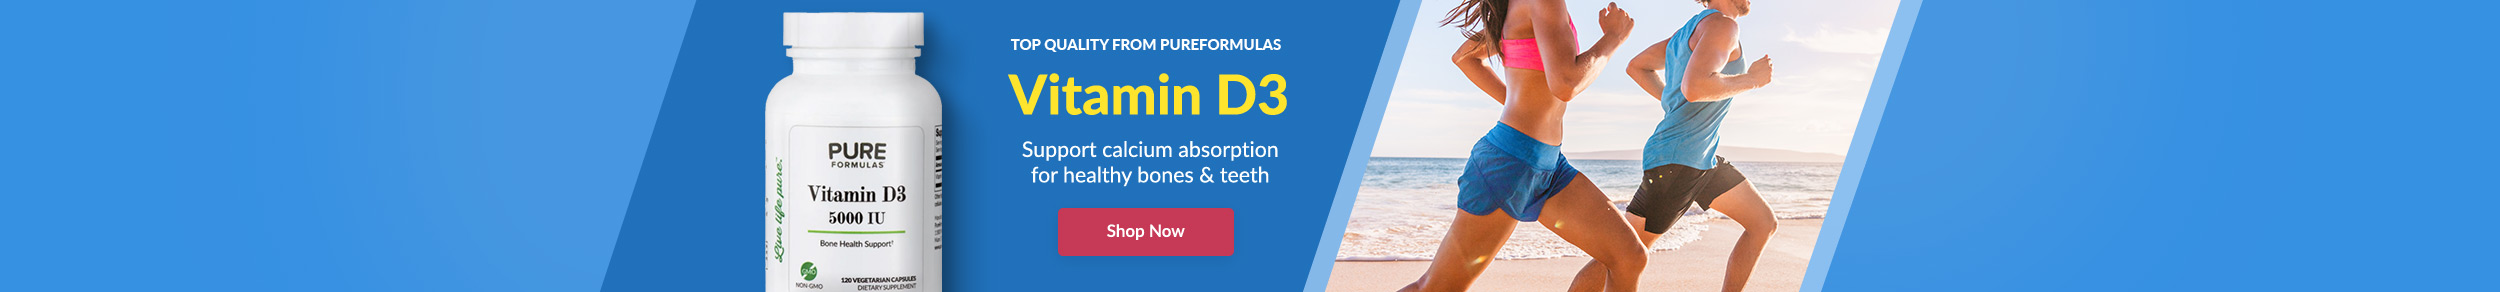 Top Quality from PureFormulas: Vitamin D3 - Support calcium absorption for healthy bones & teeth